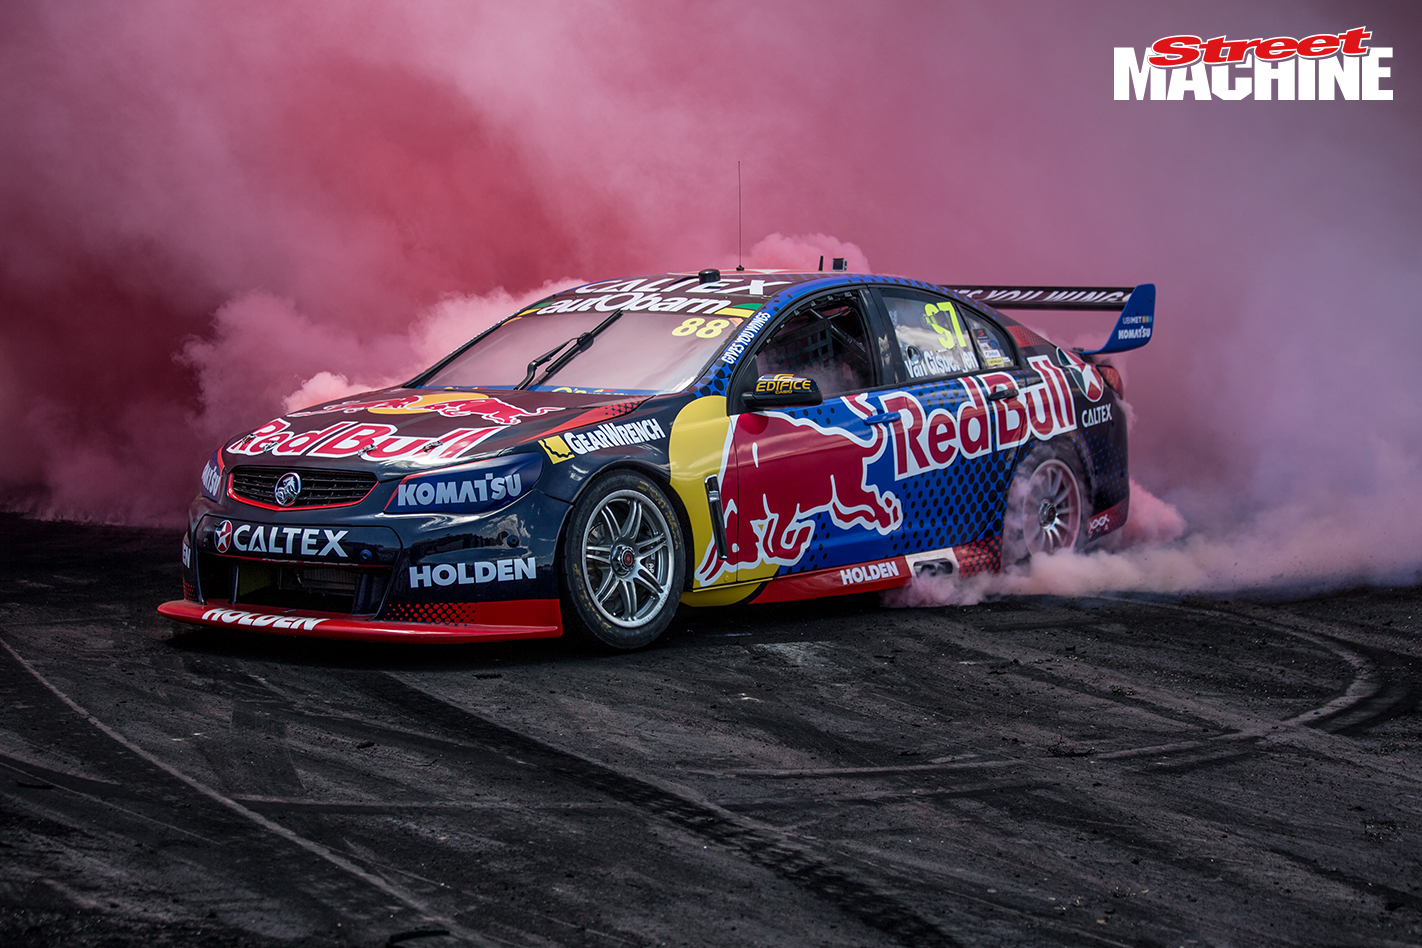 Redbull V8 Supercar Burnout 4 Nw